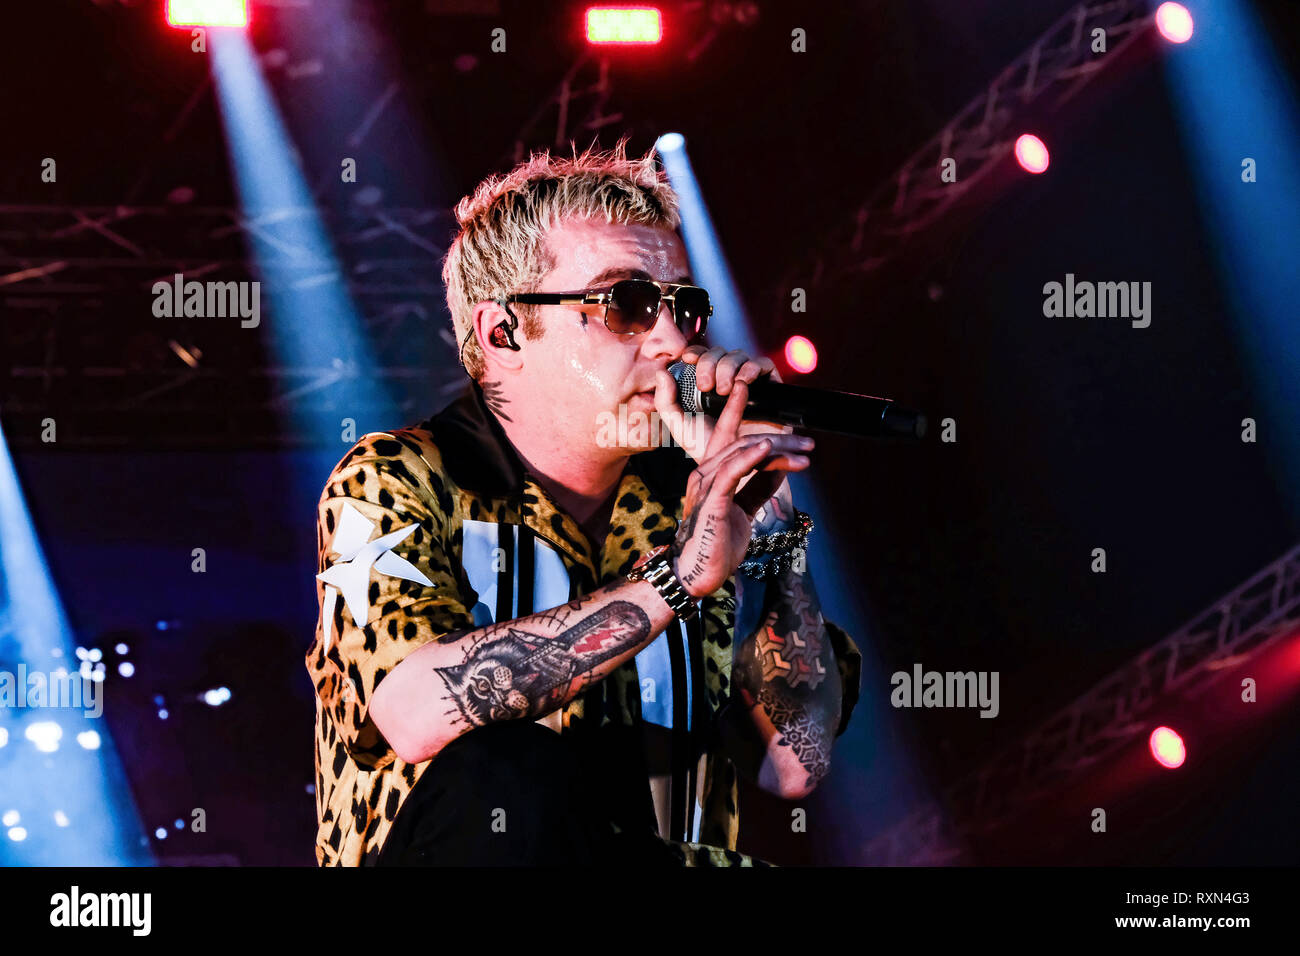 "Turin, Italy. 09th Mar, 2019. The Italian rapper Maurizio Pisciottu known as Salmo, on the stage of the Pala Alpitour during his concert tour ""Play List"". Credit: Bruno Brizzi/Pacific Press/Alamy Live News Stock Photo"